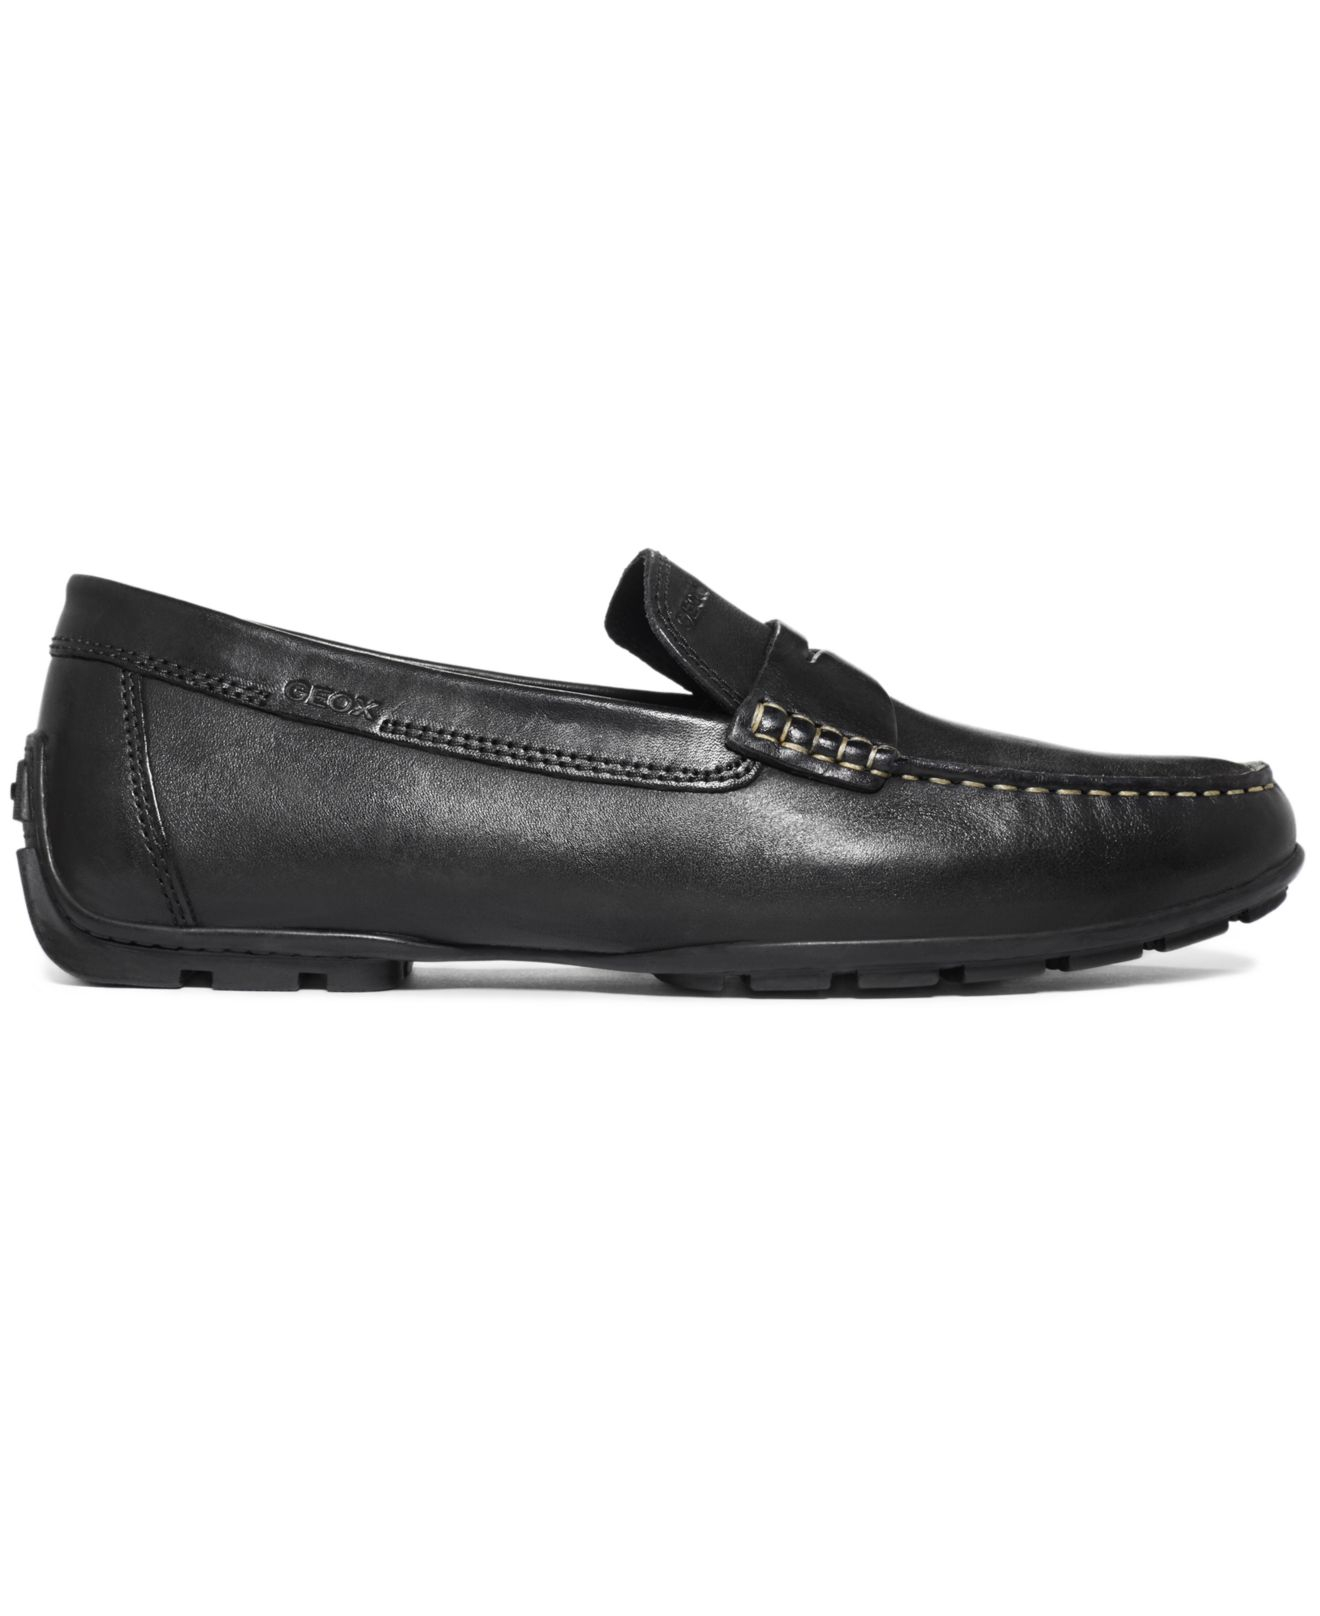 Geox Men's Monet Moccasin Penny Loafer